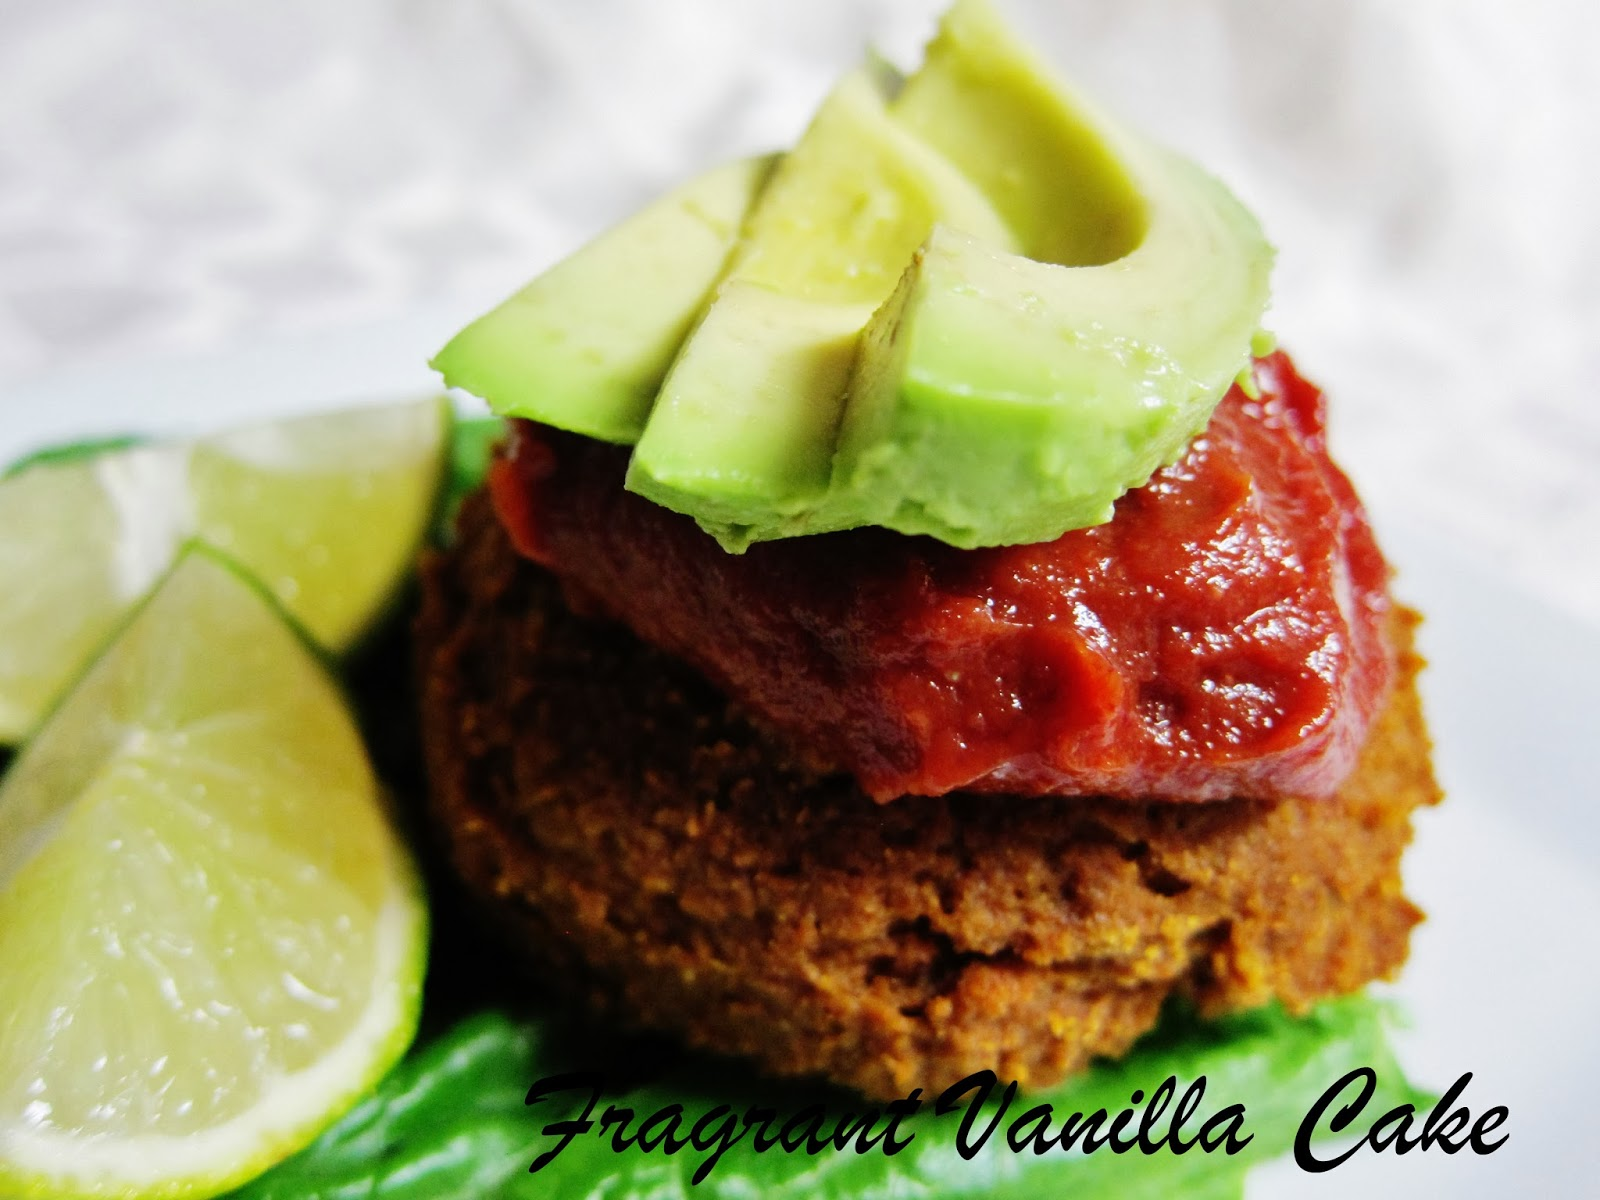 Raw Chili Squash Lentil Burgers with Cranberry Chipotle Ketchup